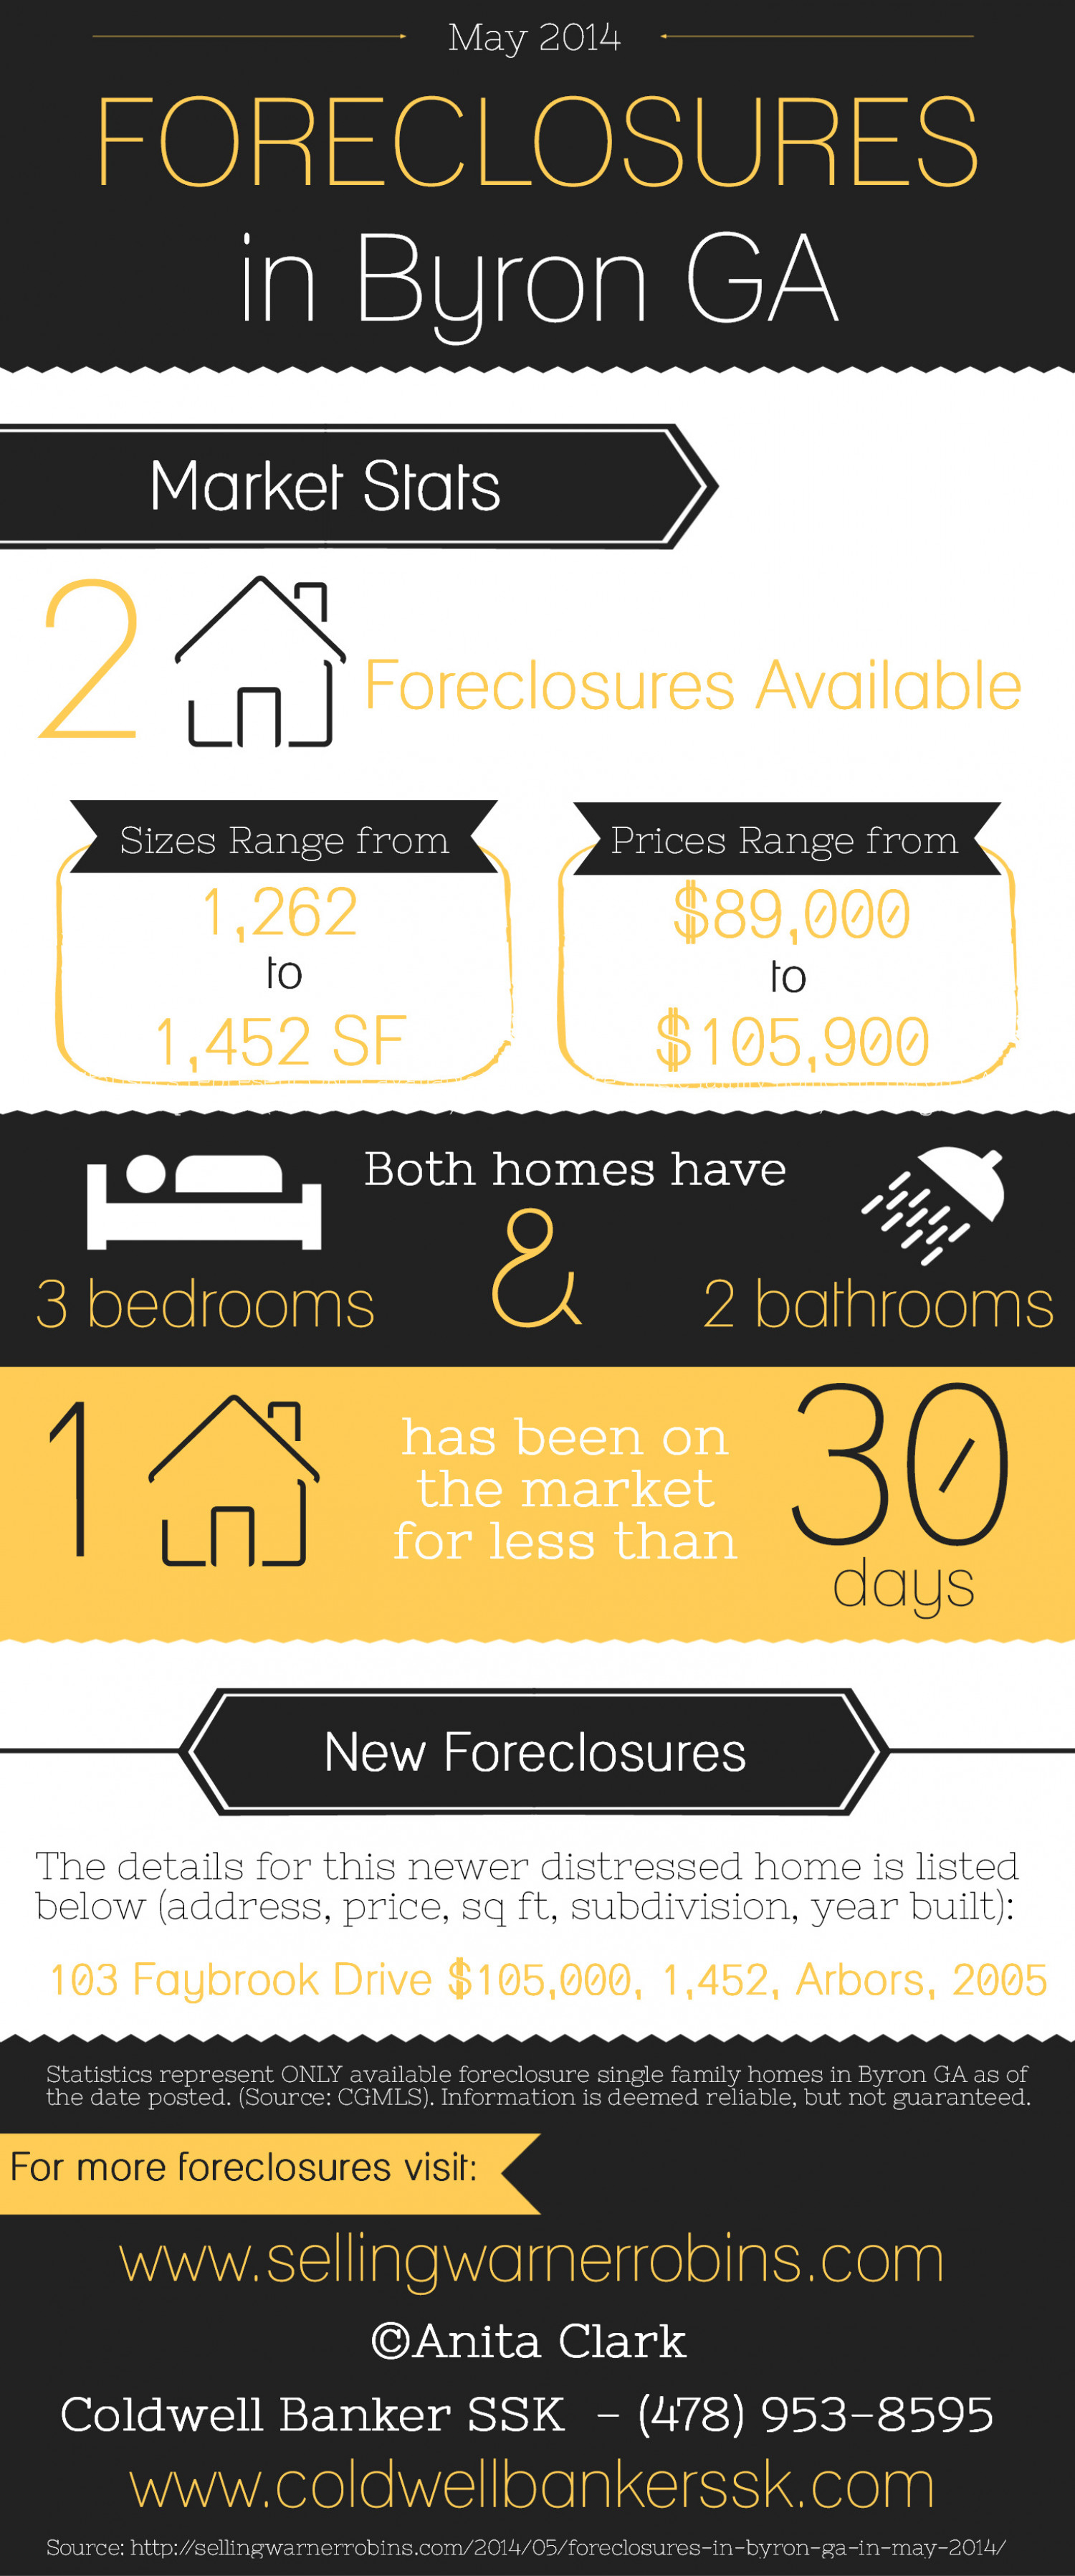 Foreclosures in Byron GA for May 2014 Infographic